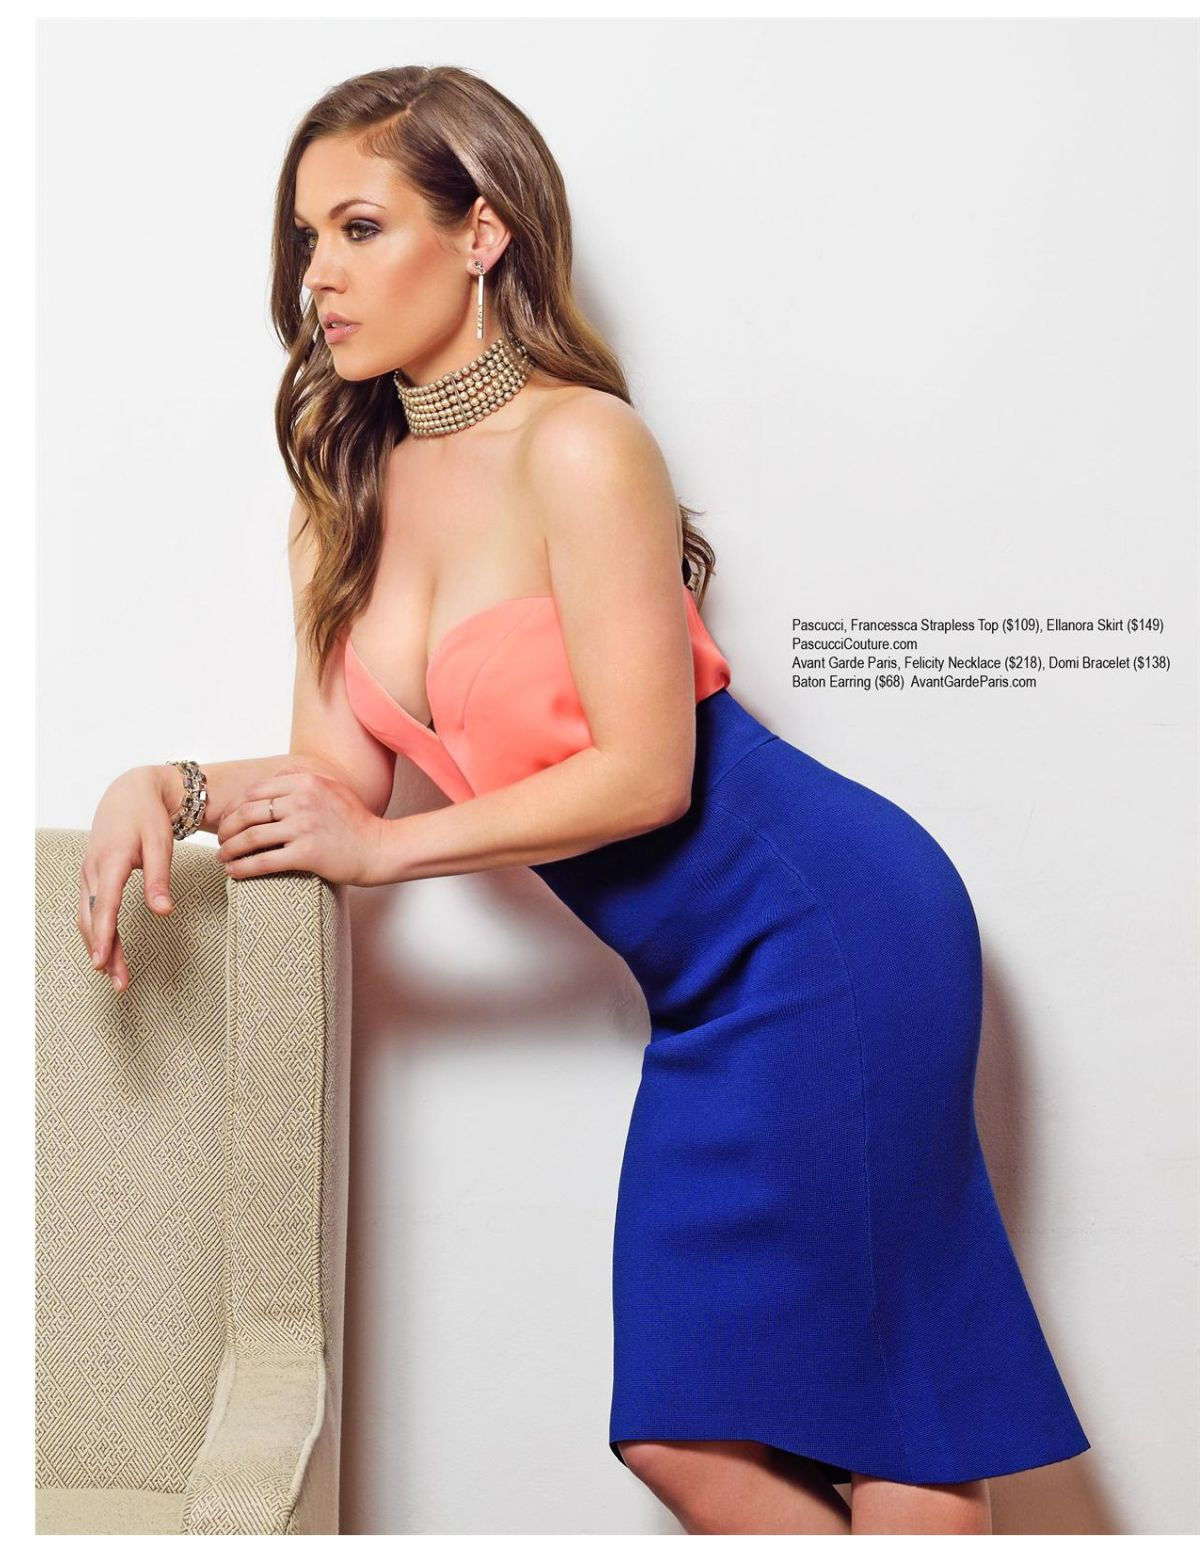 AGNES BRUCKNER in Regard Magazine, April 2015 Issue